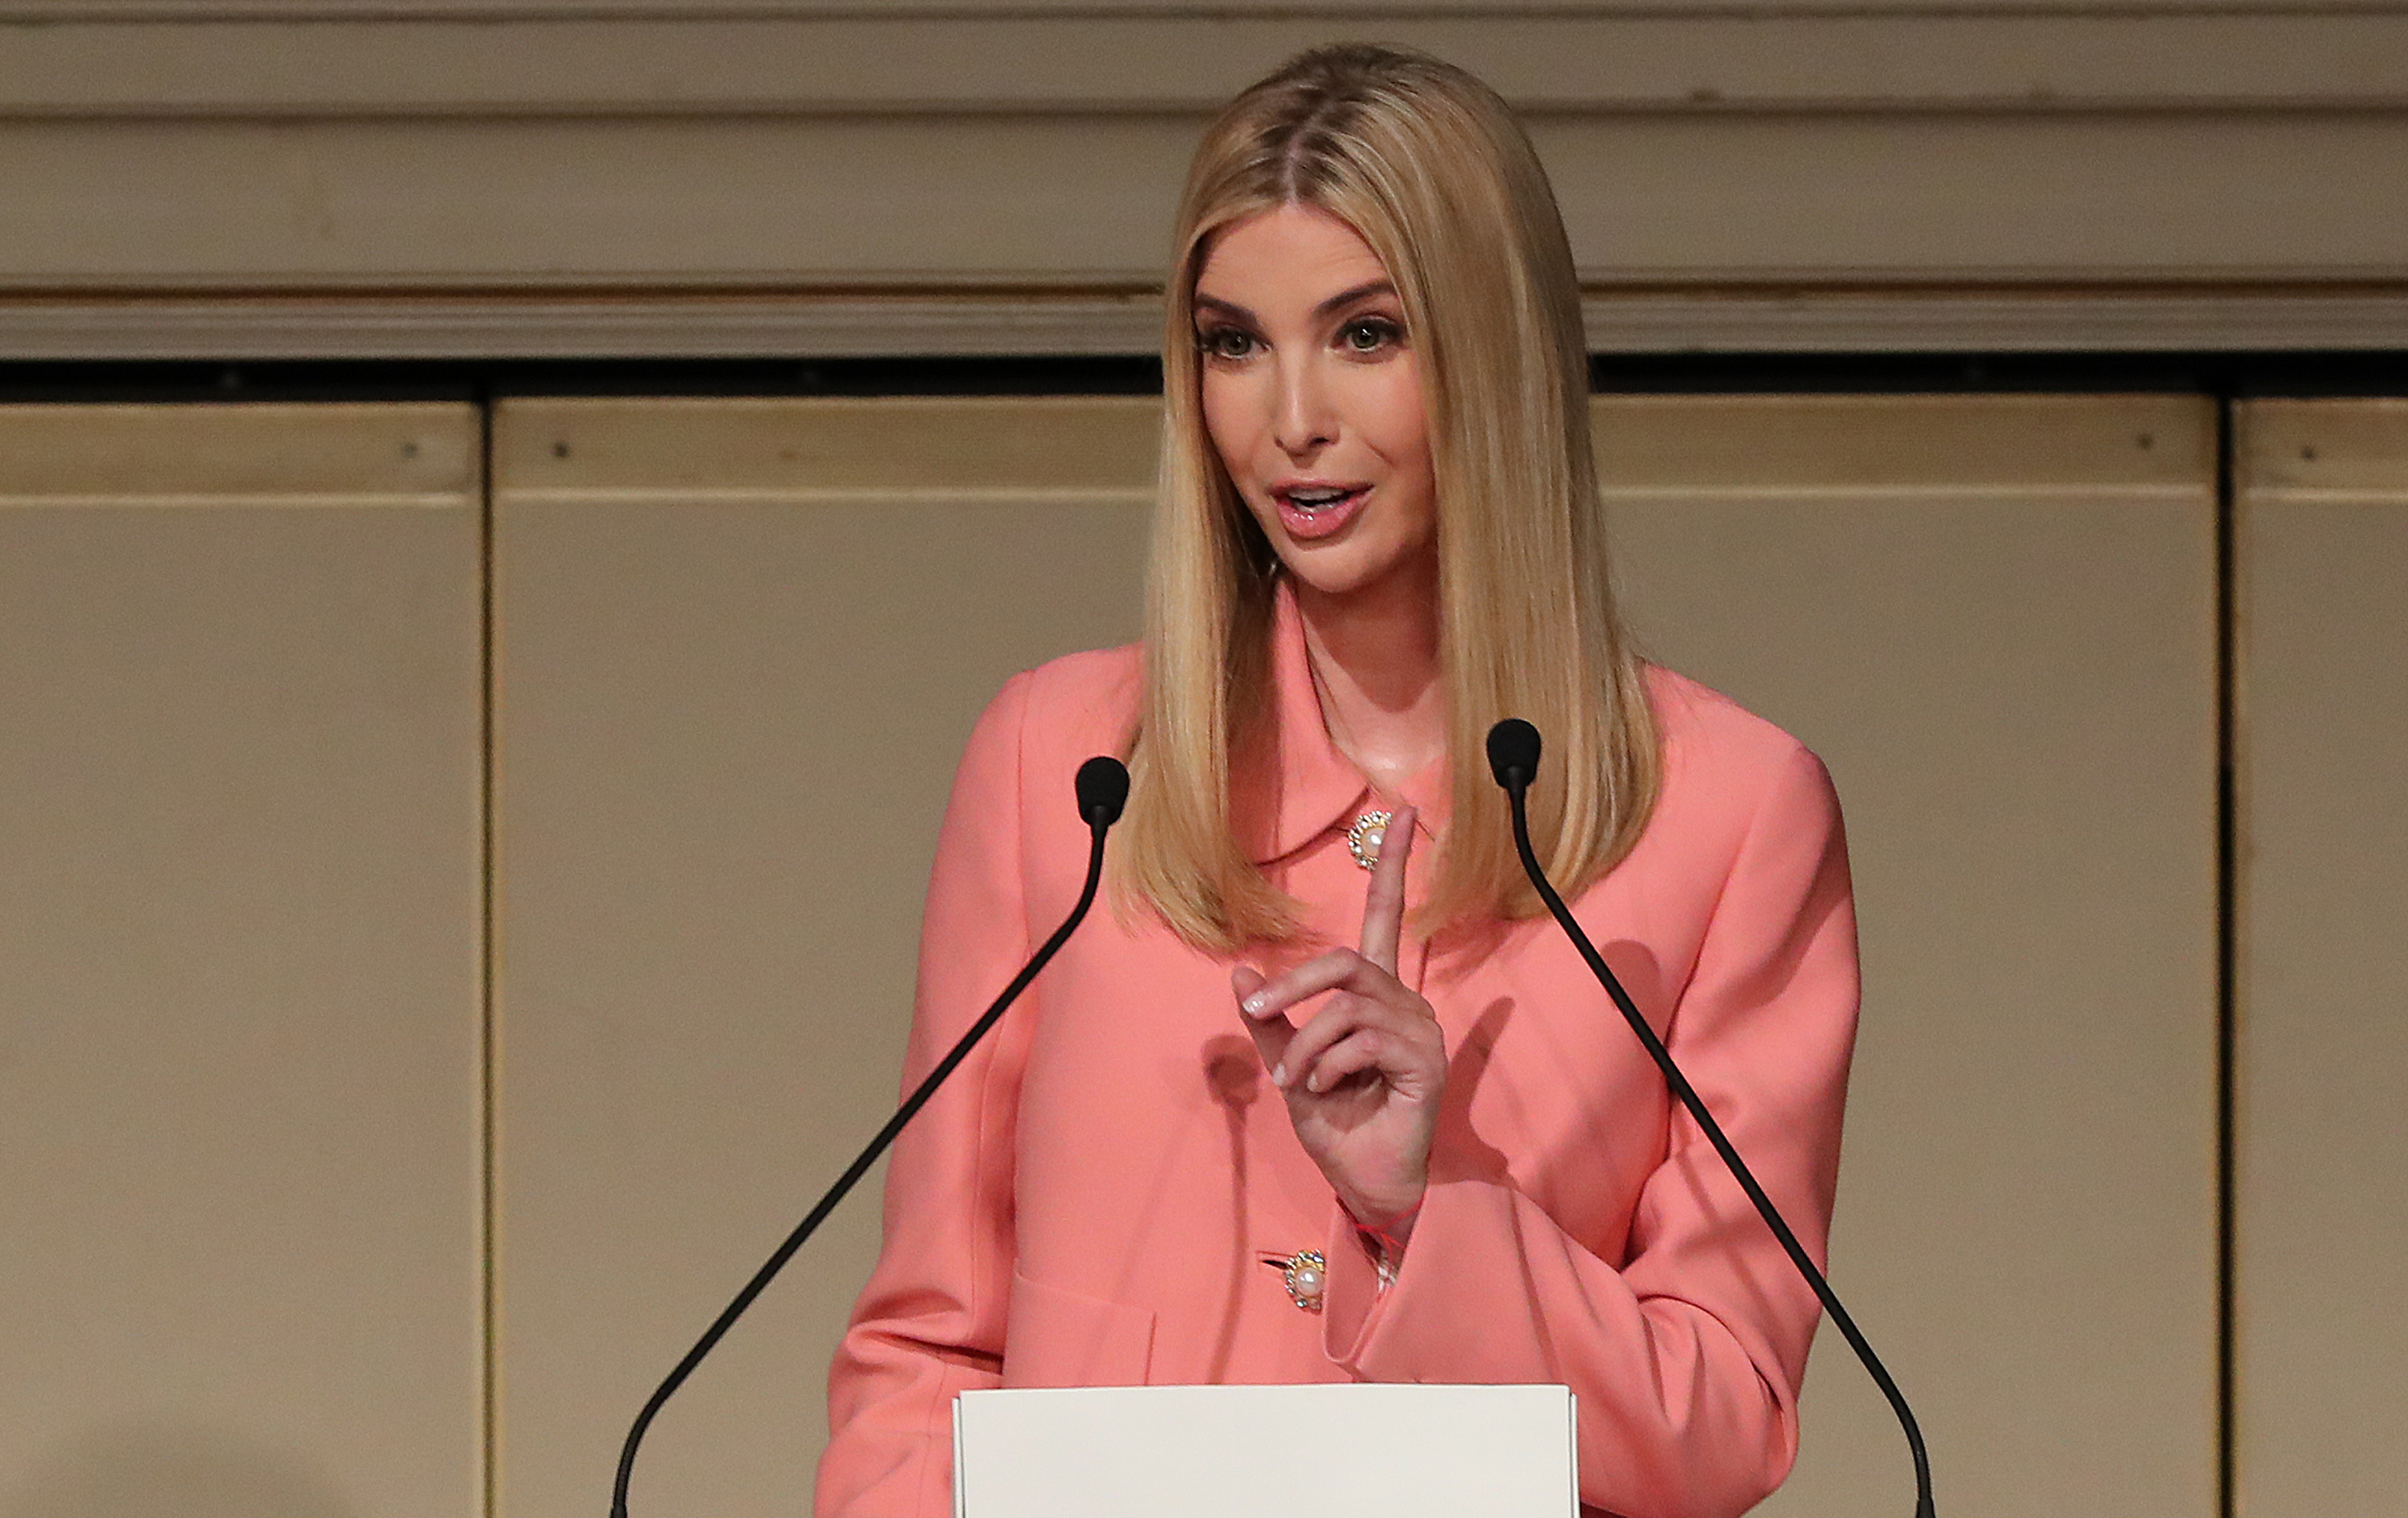 Ivanka Trump visited a school unannounced, and some parents are angry